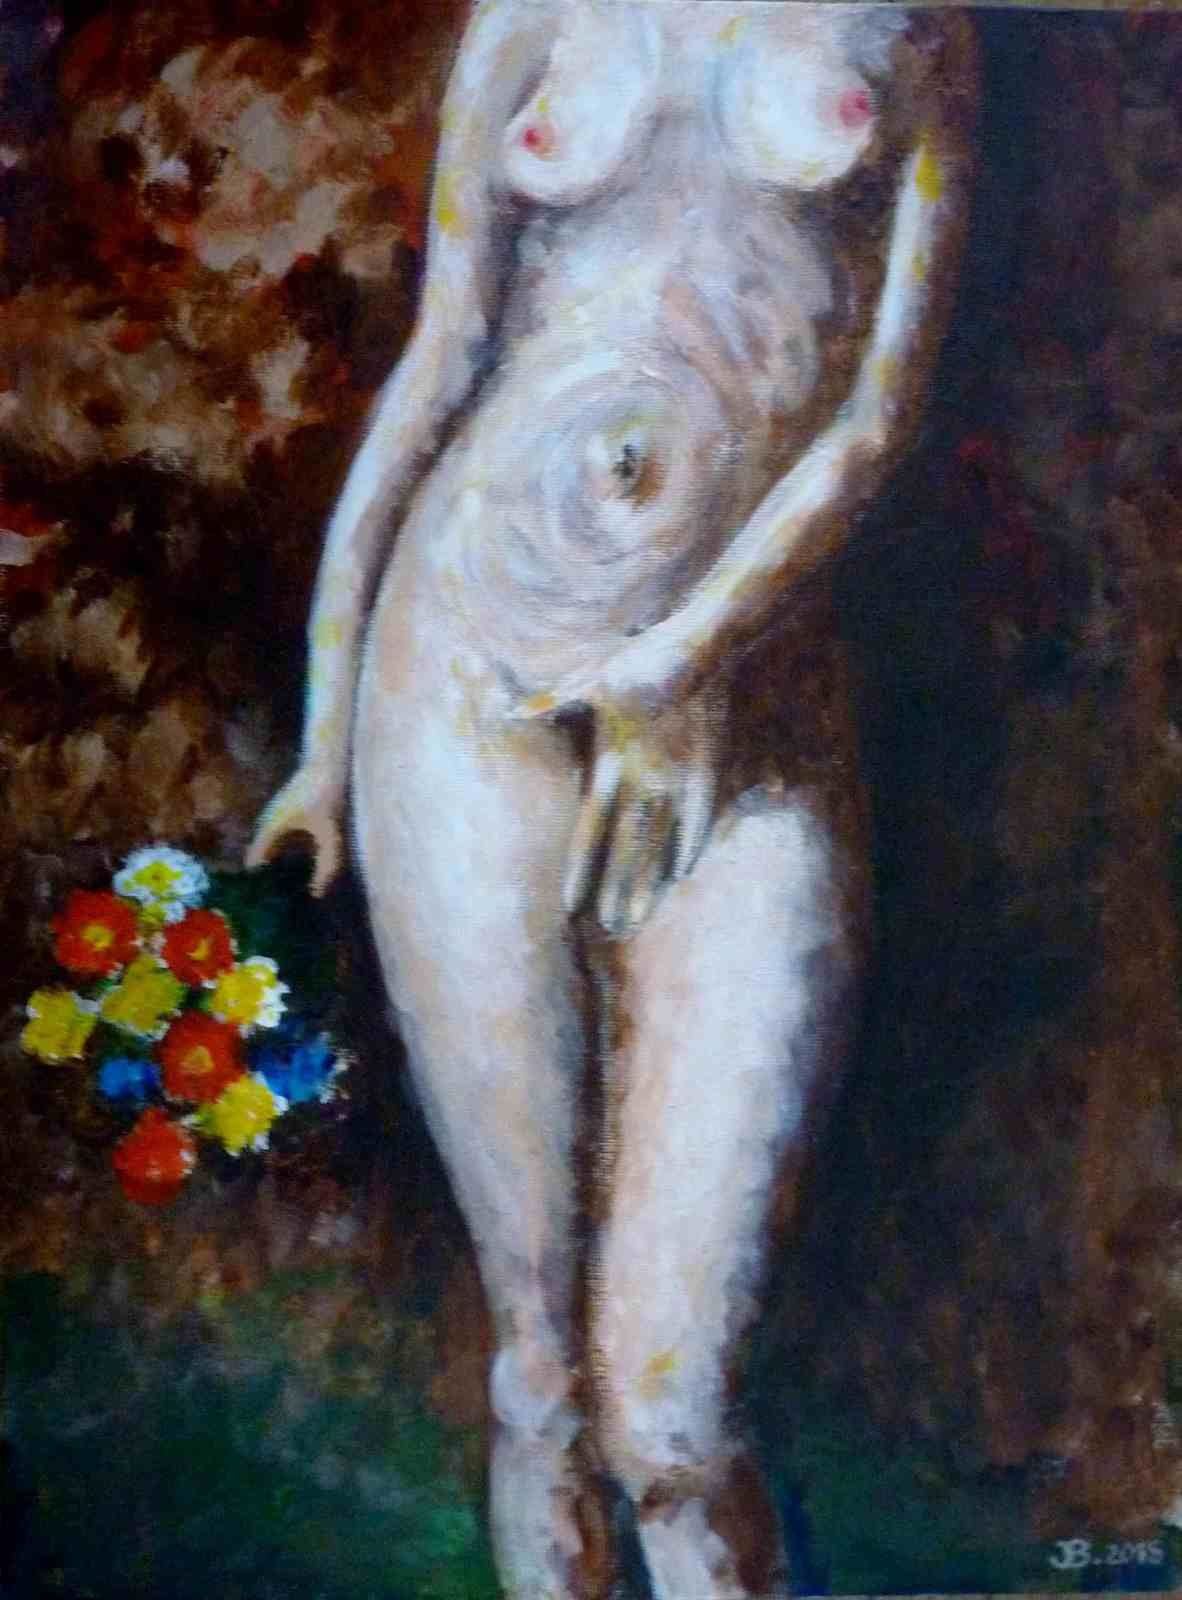 La fille à lèvres d'orange